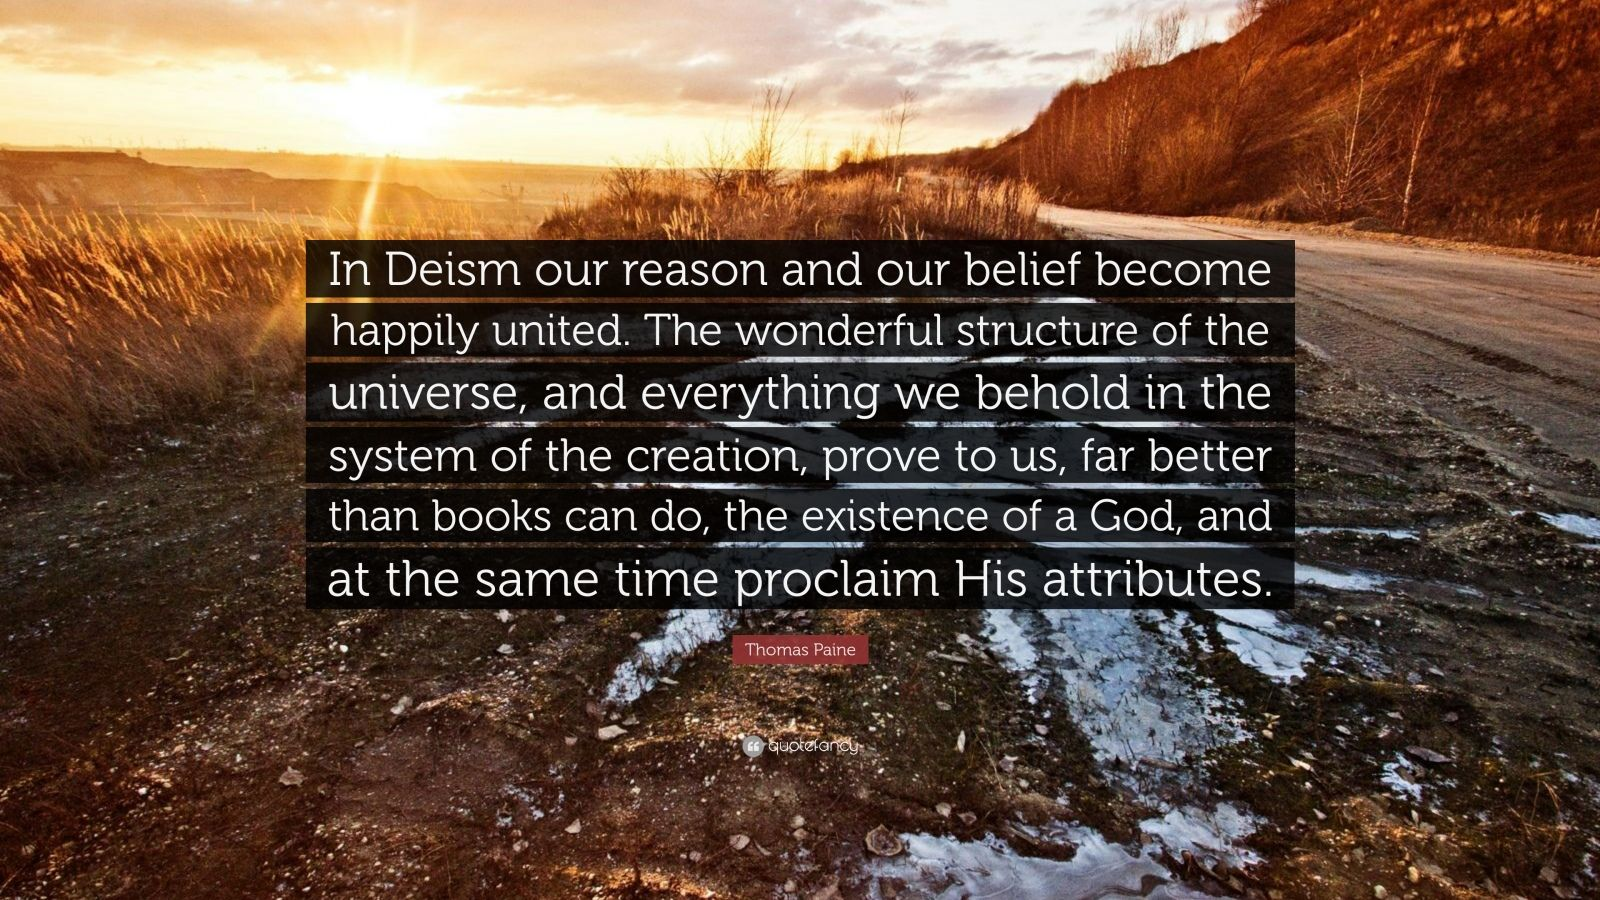 """Thomas Paine Quote: """"In Deism our reason and our belief become happily united. The wonderful structure of the universe, and everything we behold in the system of the creation, prove to us, far better than books can do, the existence of a God, and at the same time proclaim His attributes."""""""